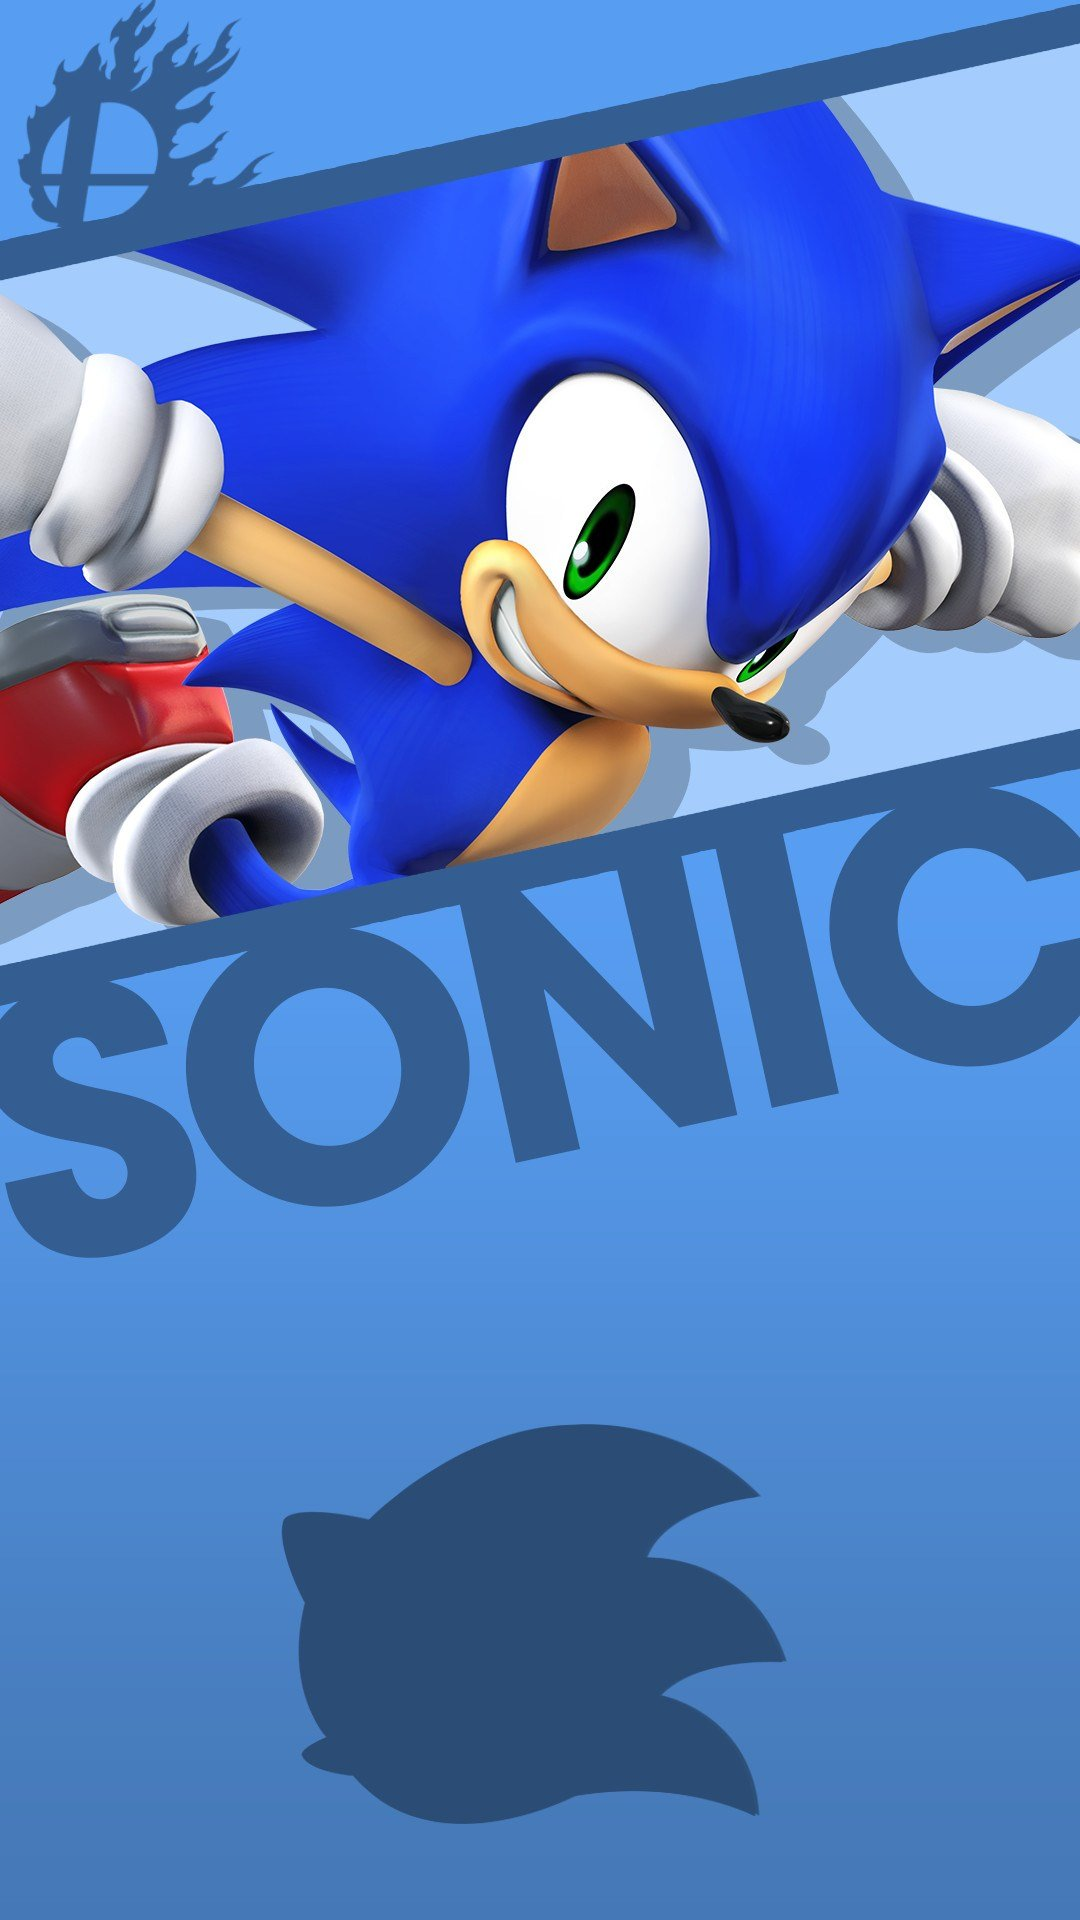 Best Sonic The Hedgehog Wallpaper 2018 53 Images With Pictures